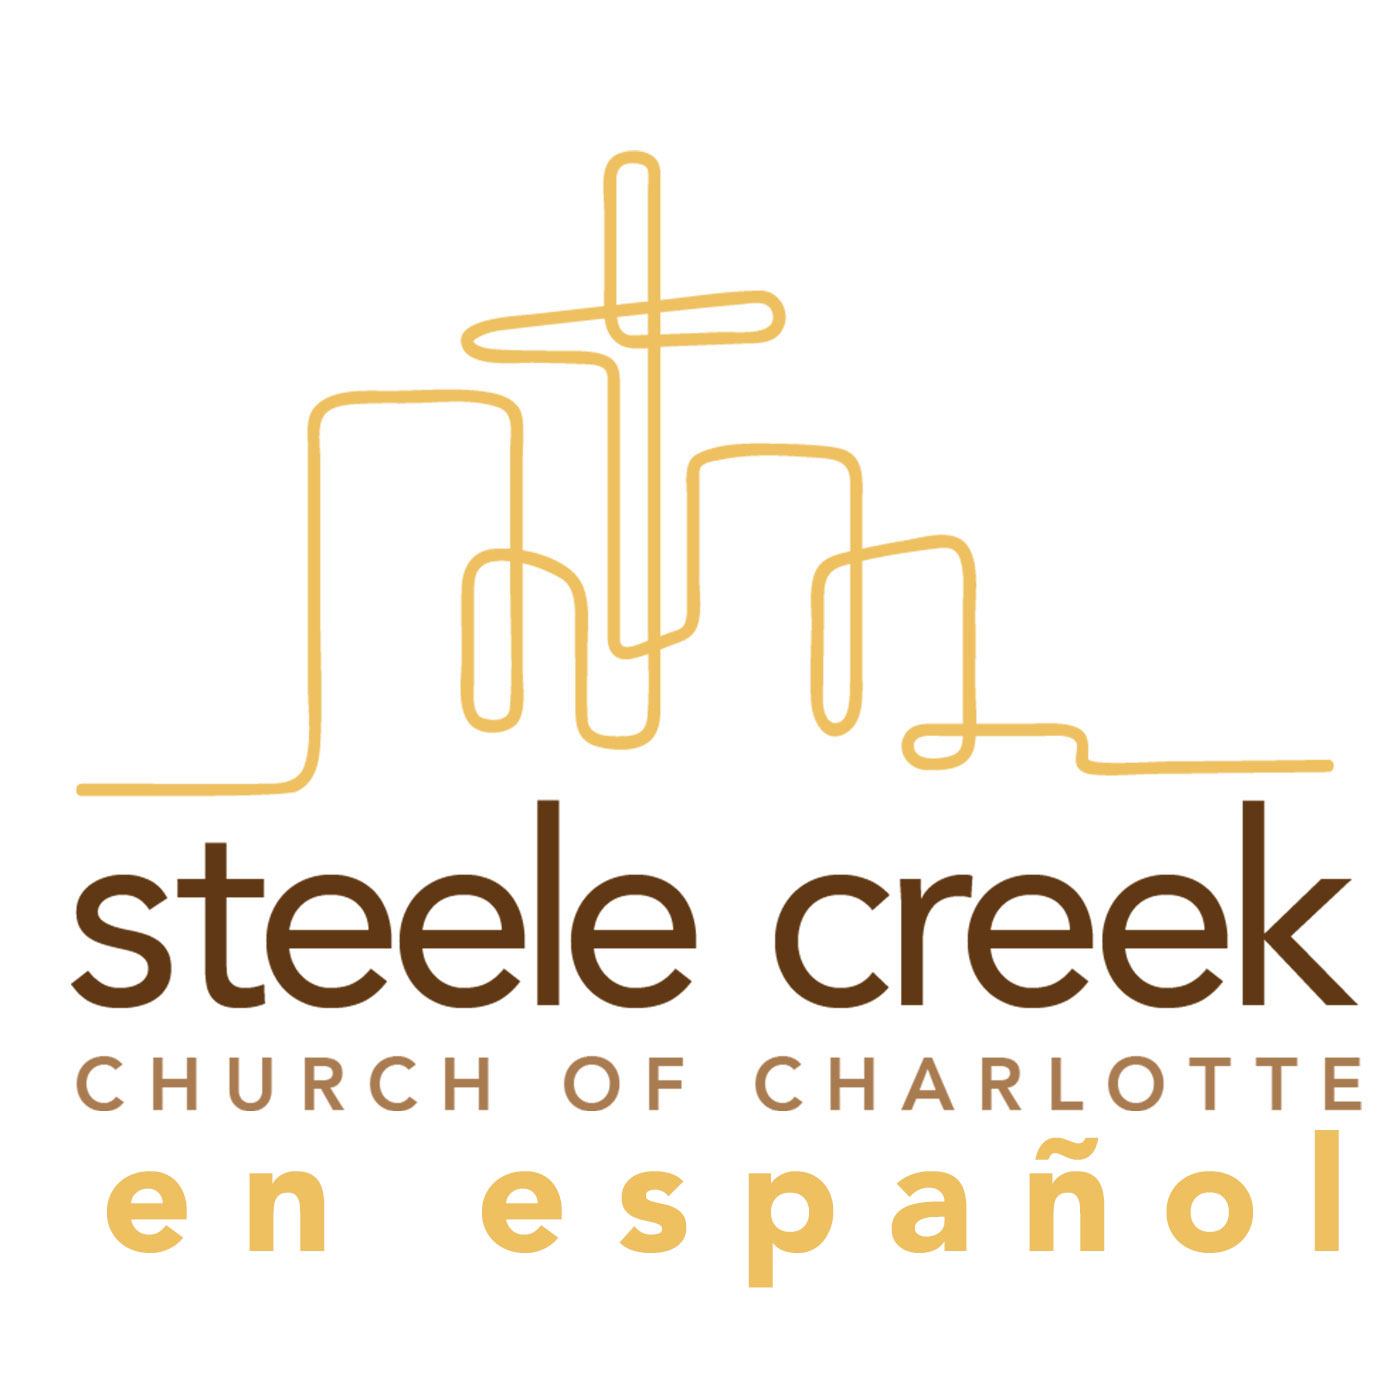 podcasts en español - Steele Creek Church of Charlotte